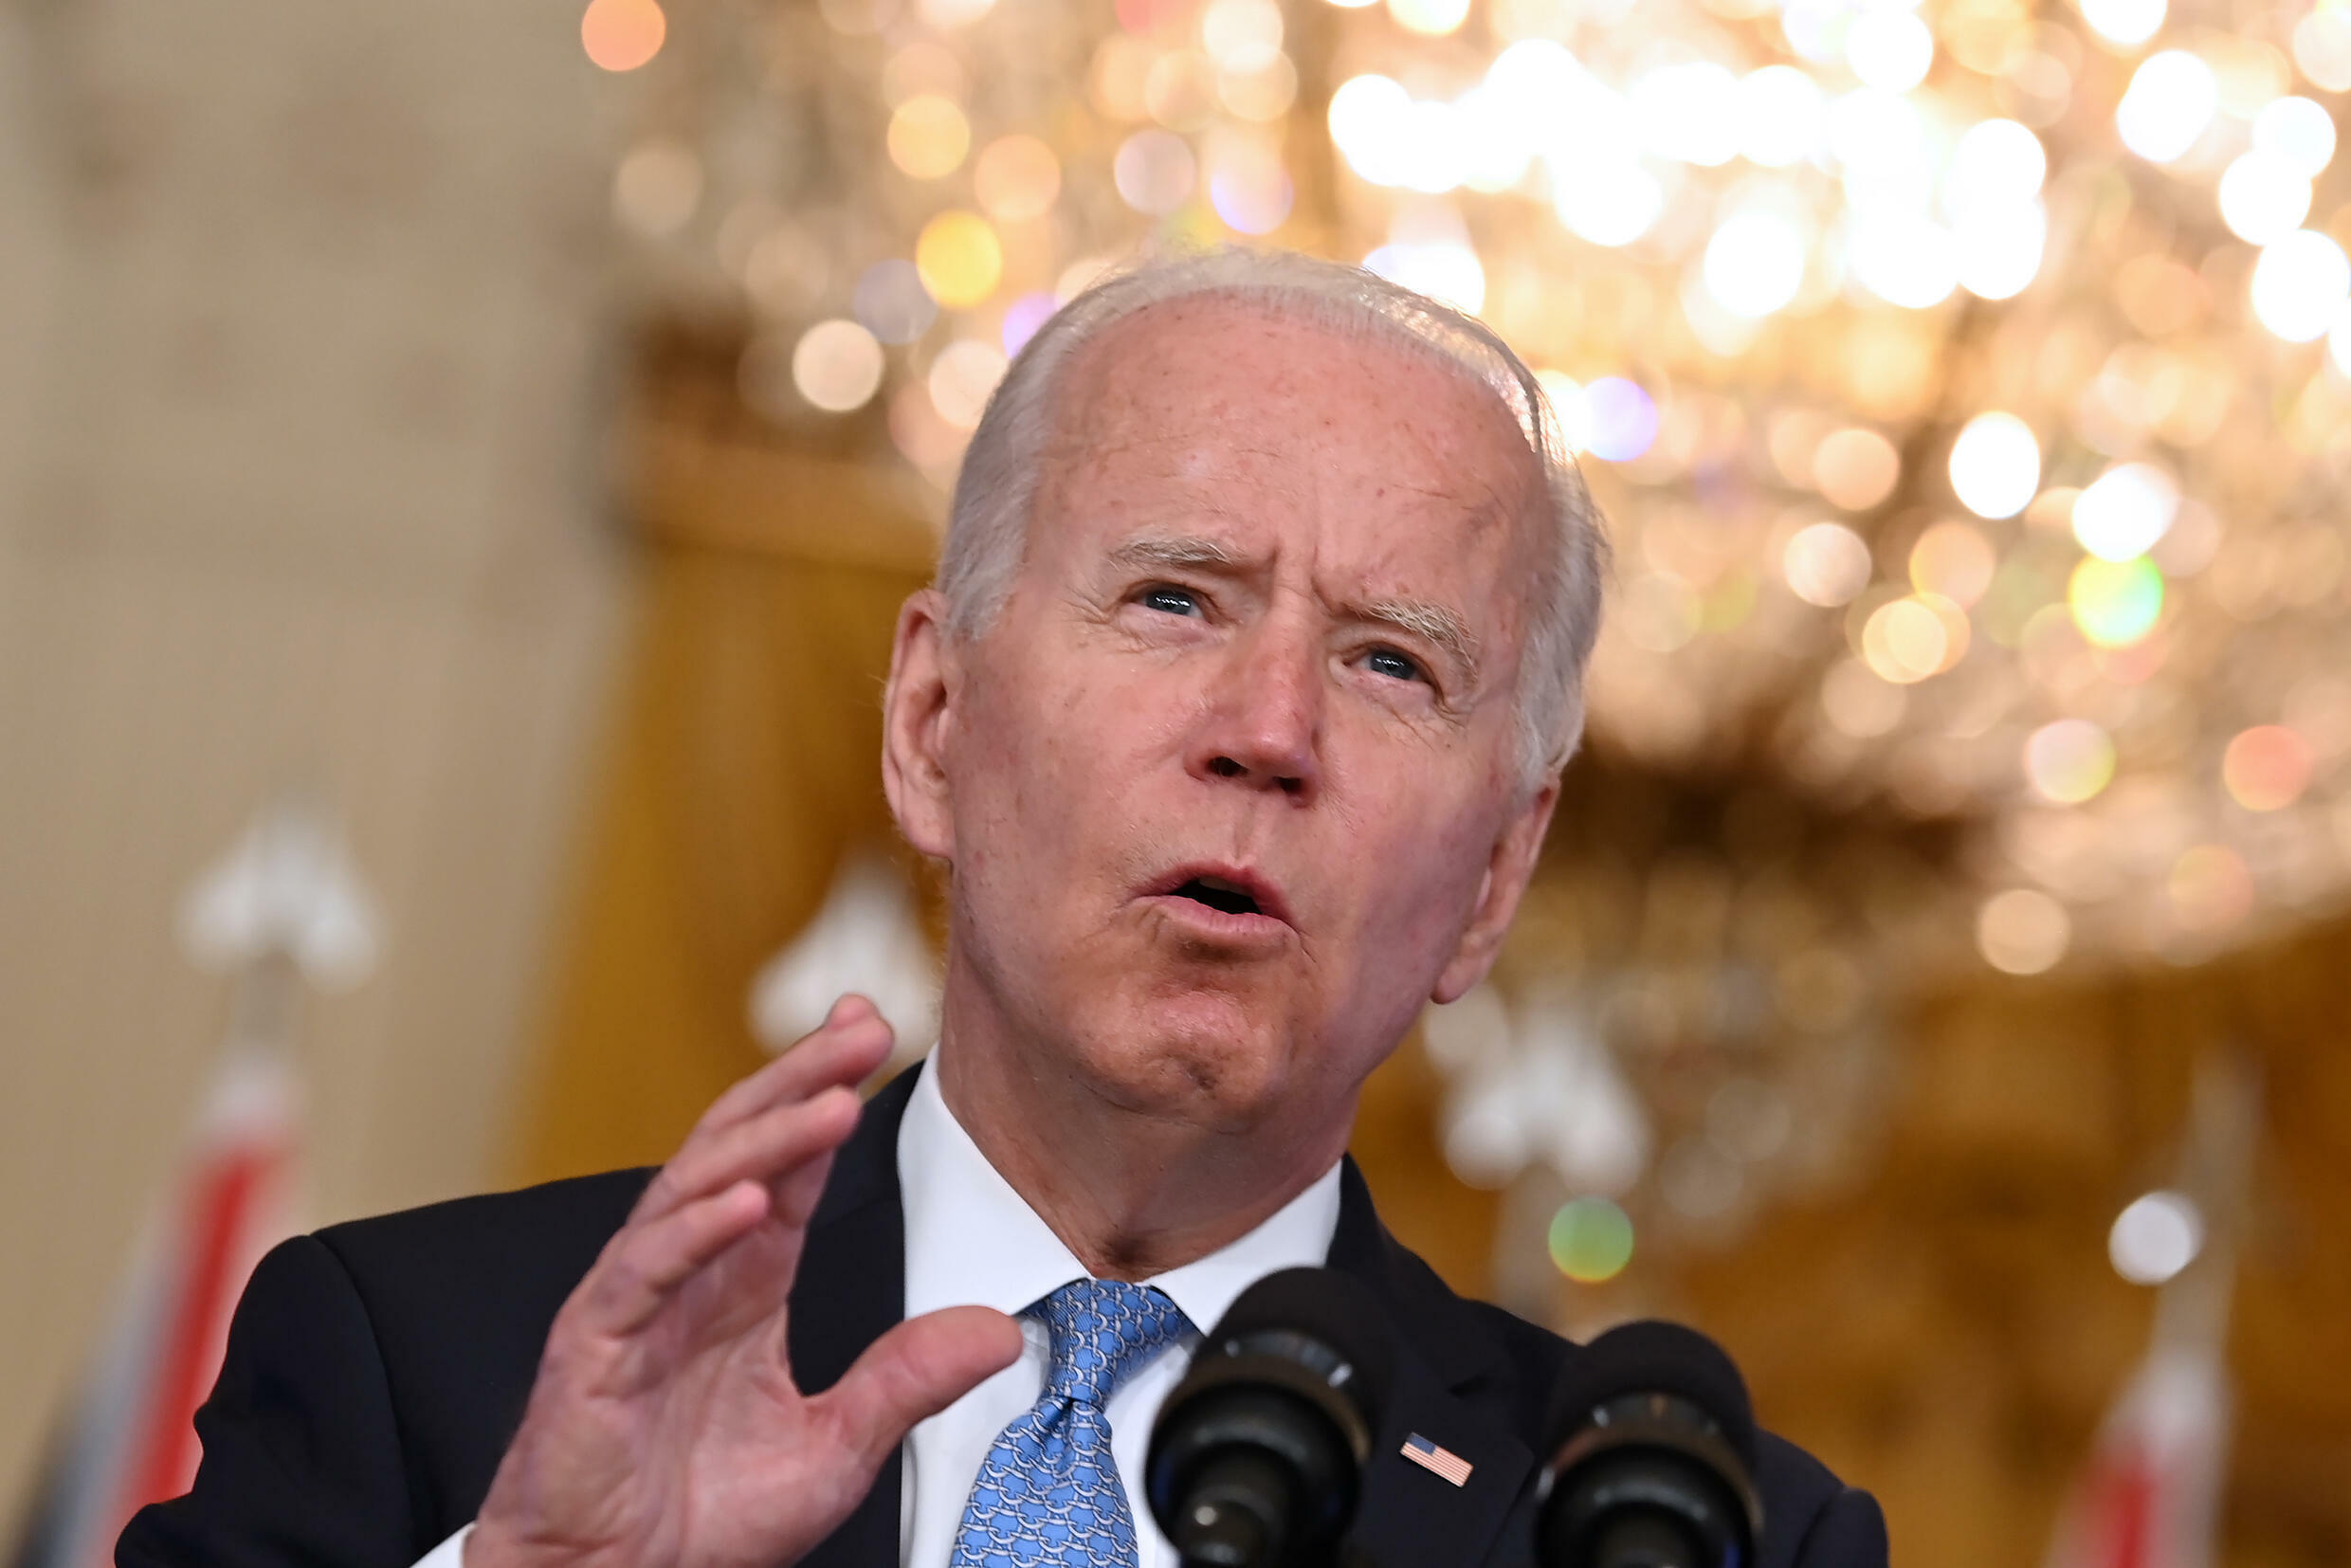 'I want to thank that fellow Down Under,' Biden said, apparently struggling to remember the name of the Australian prime minister